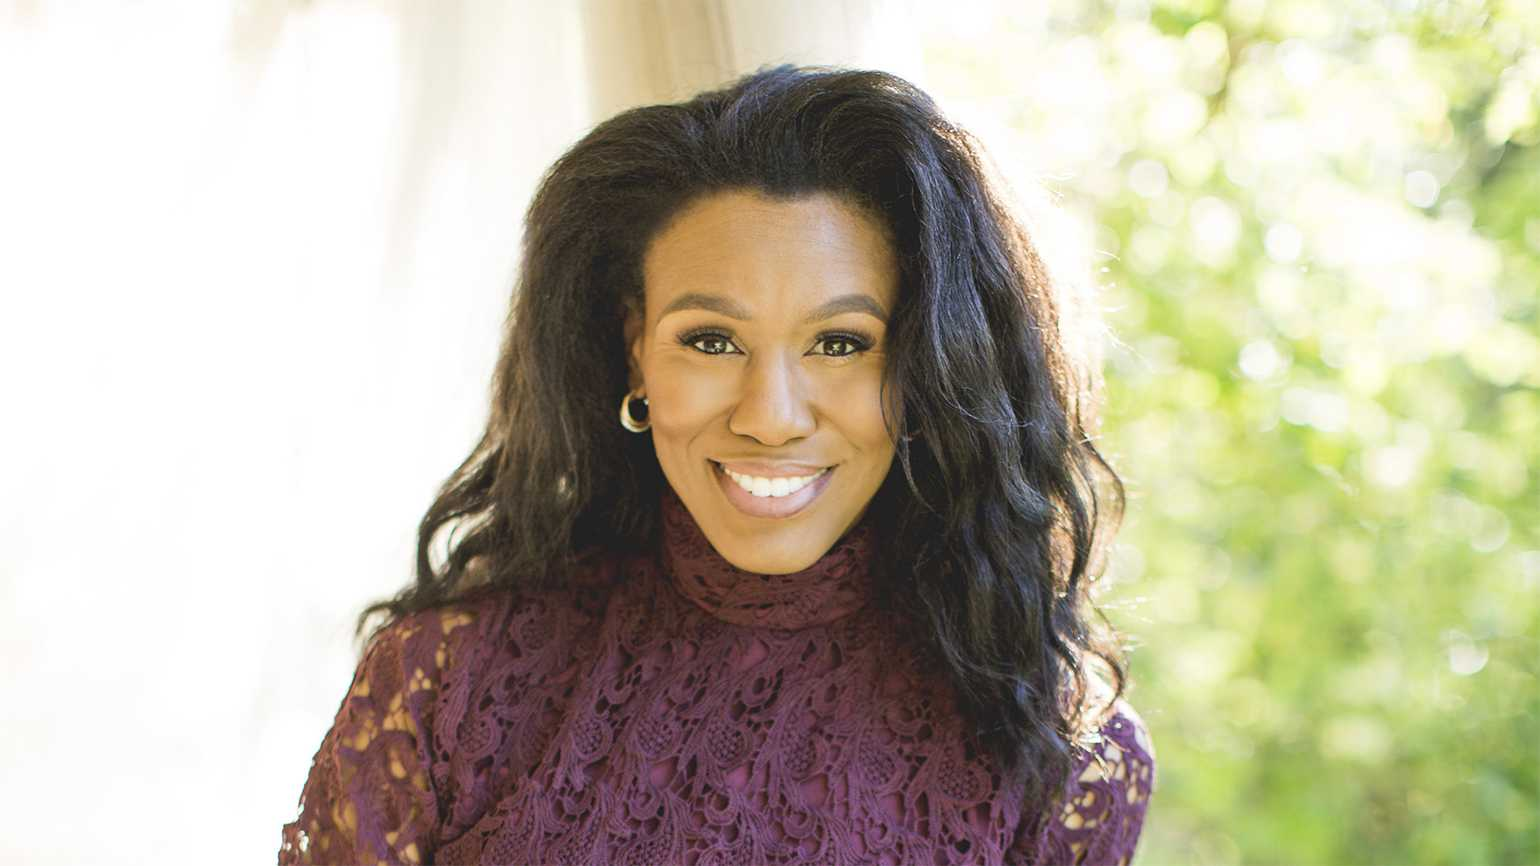 Priscilla Shirer Now Home After Major Lung Surgery